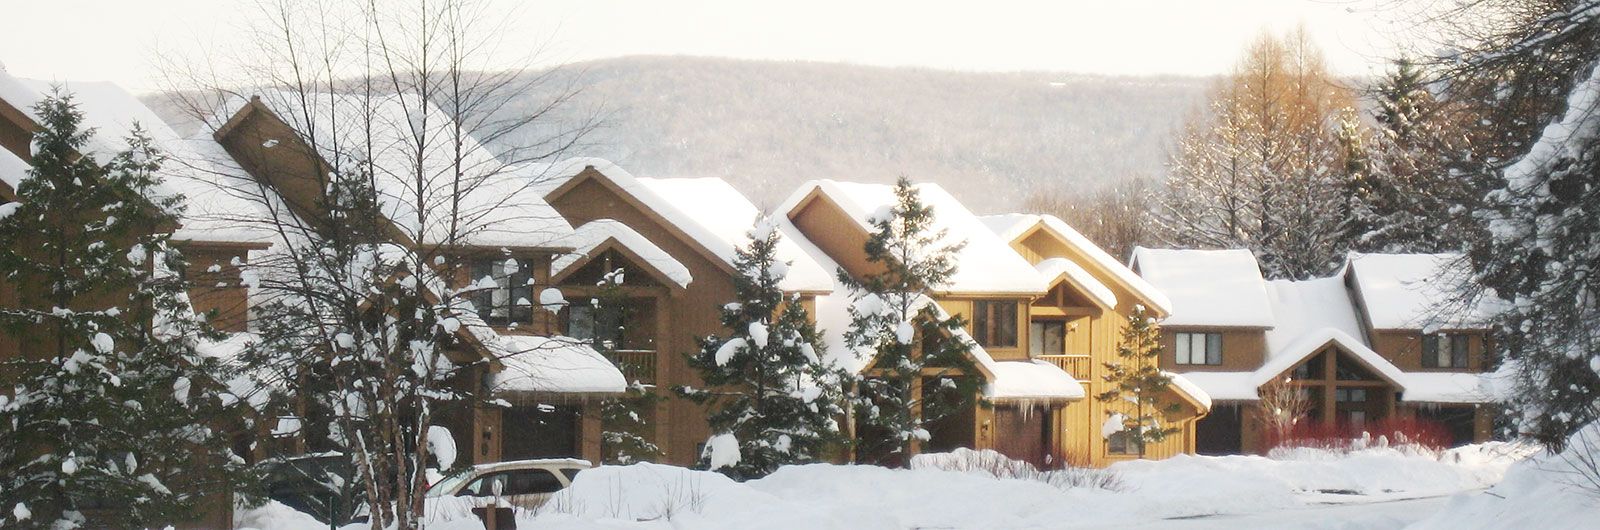 SnowPine Townhouses exterior in winter